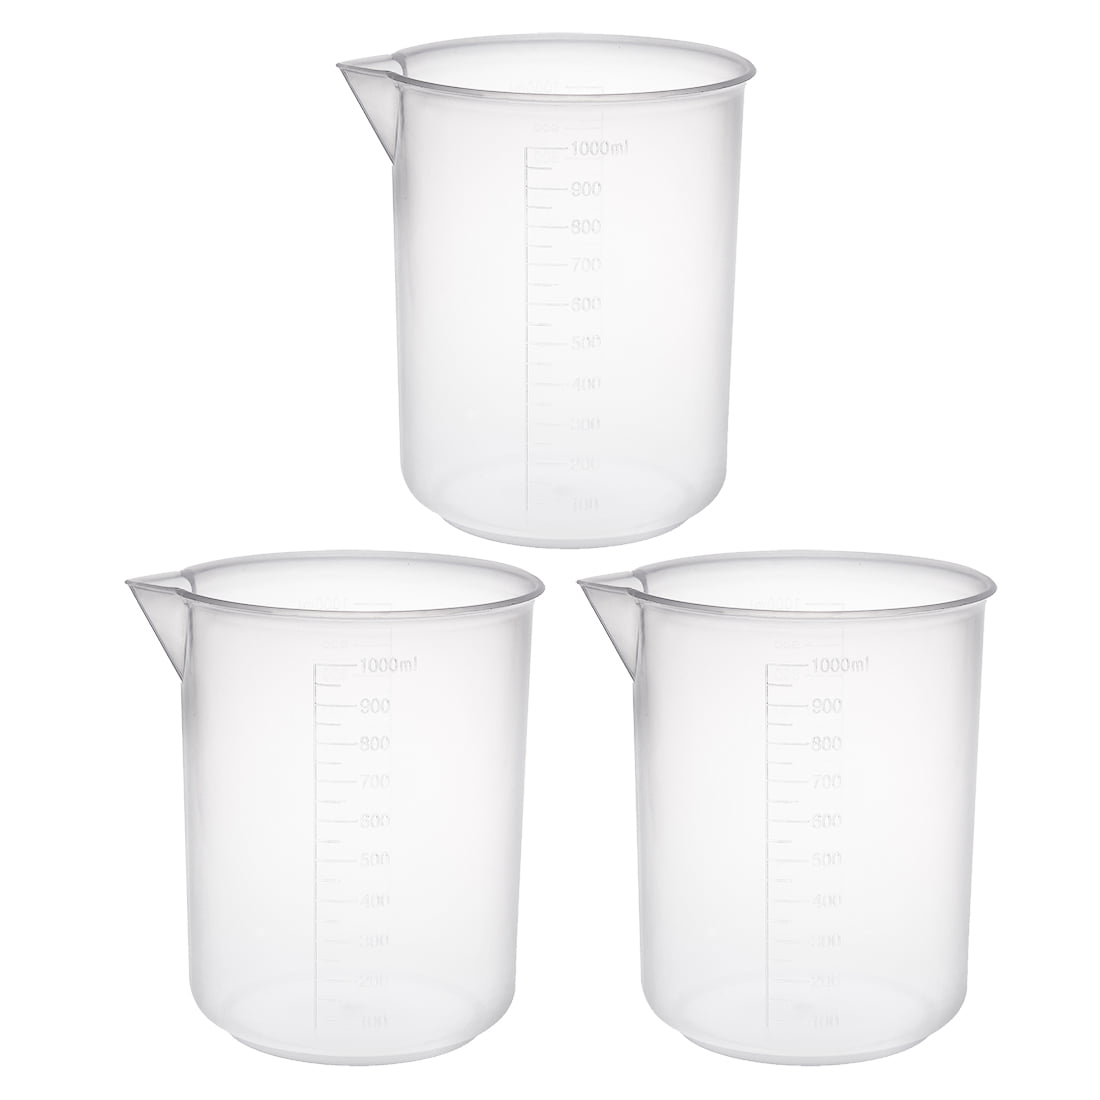 3pcs Measuring Cup Labs PP Graduated Beakers 1000ml by Unique-Bargains